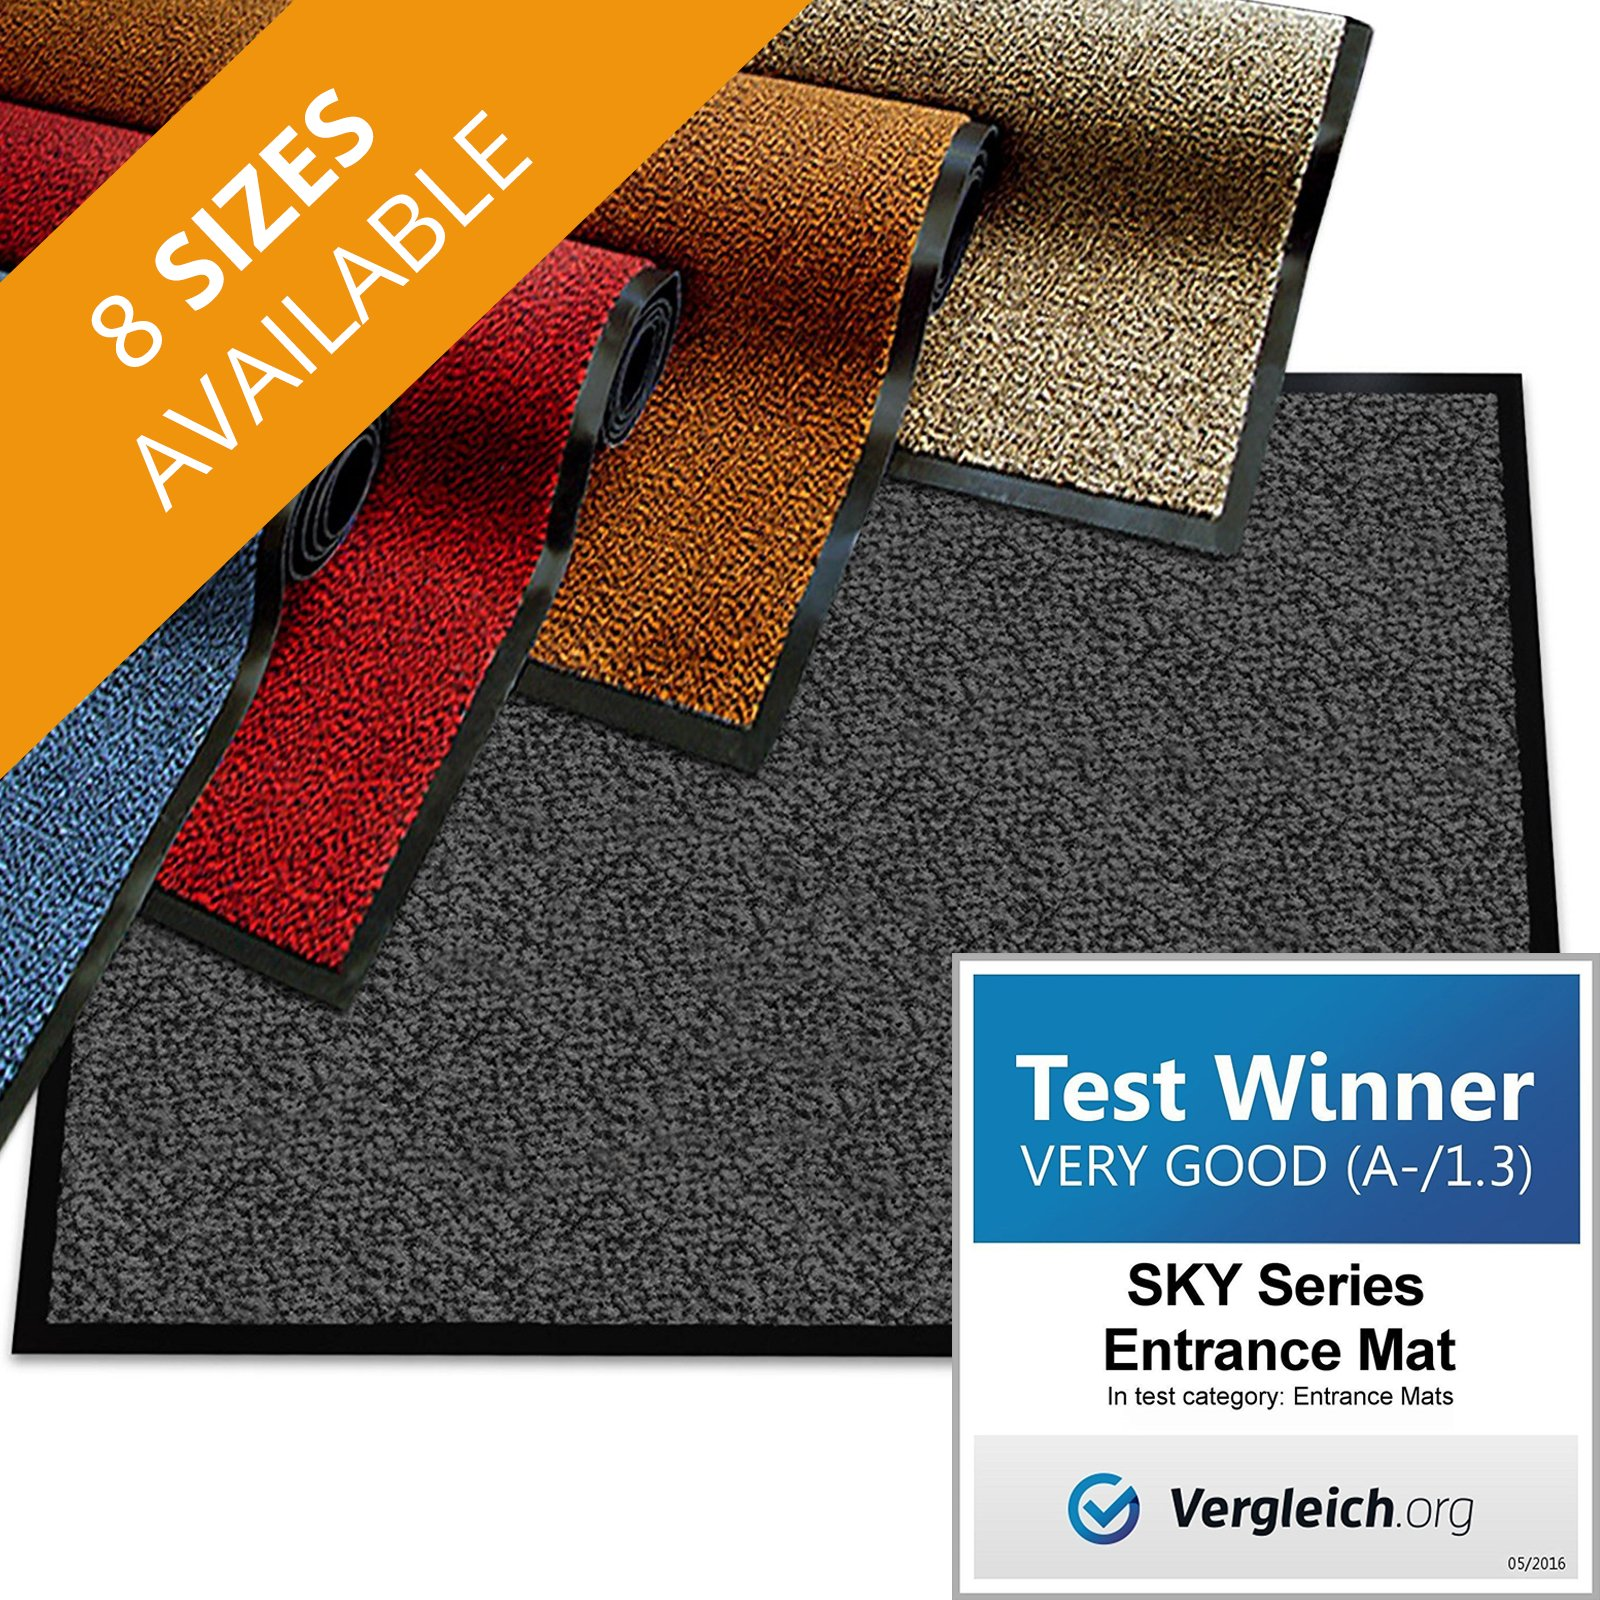 casa pura Premium Entry Mat | Entrance Mat Comparison Test Score: Very Good (A-/1.3) | Ideal as Front Door Mat or Entry Rug | Charcoal Gray - 36'' x 48''